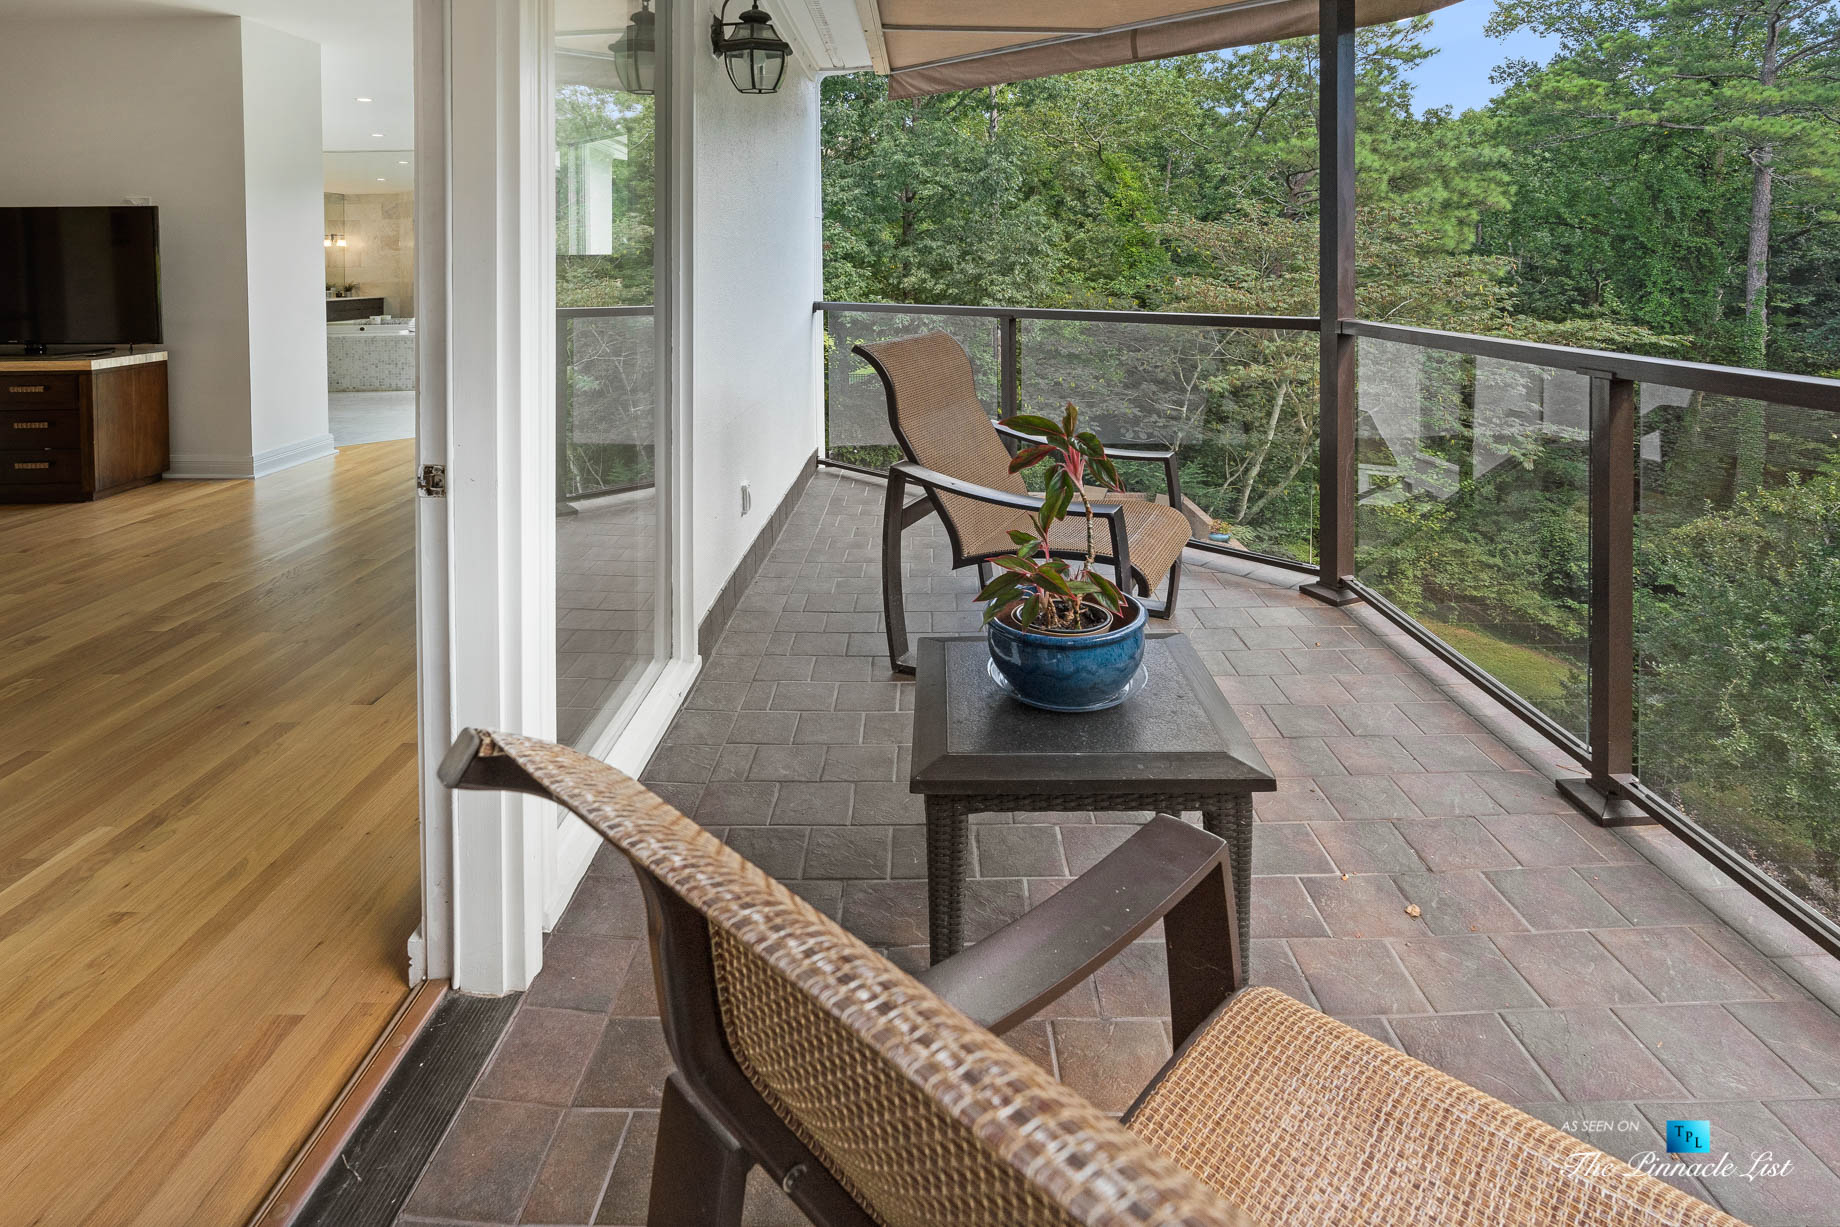 3906 Paces Ferry Rd NW, Atlanta, GA, USA – Master Bedroom Private Deck – Luxury Real Estate – Buckhead Home